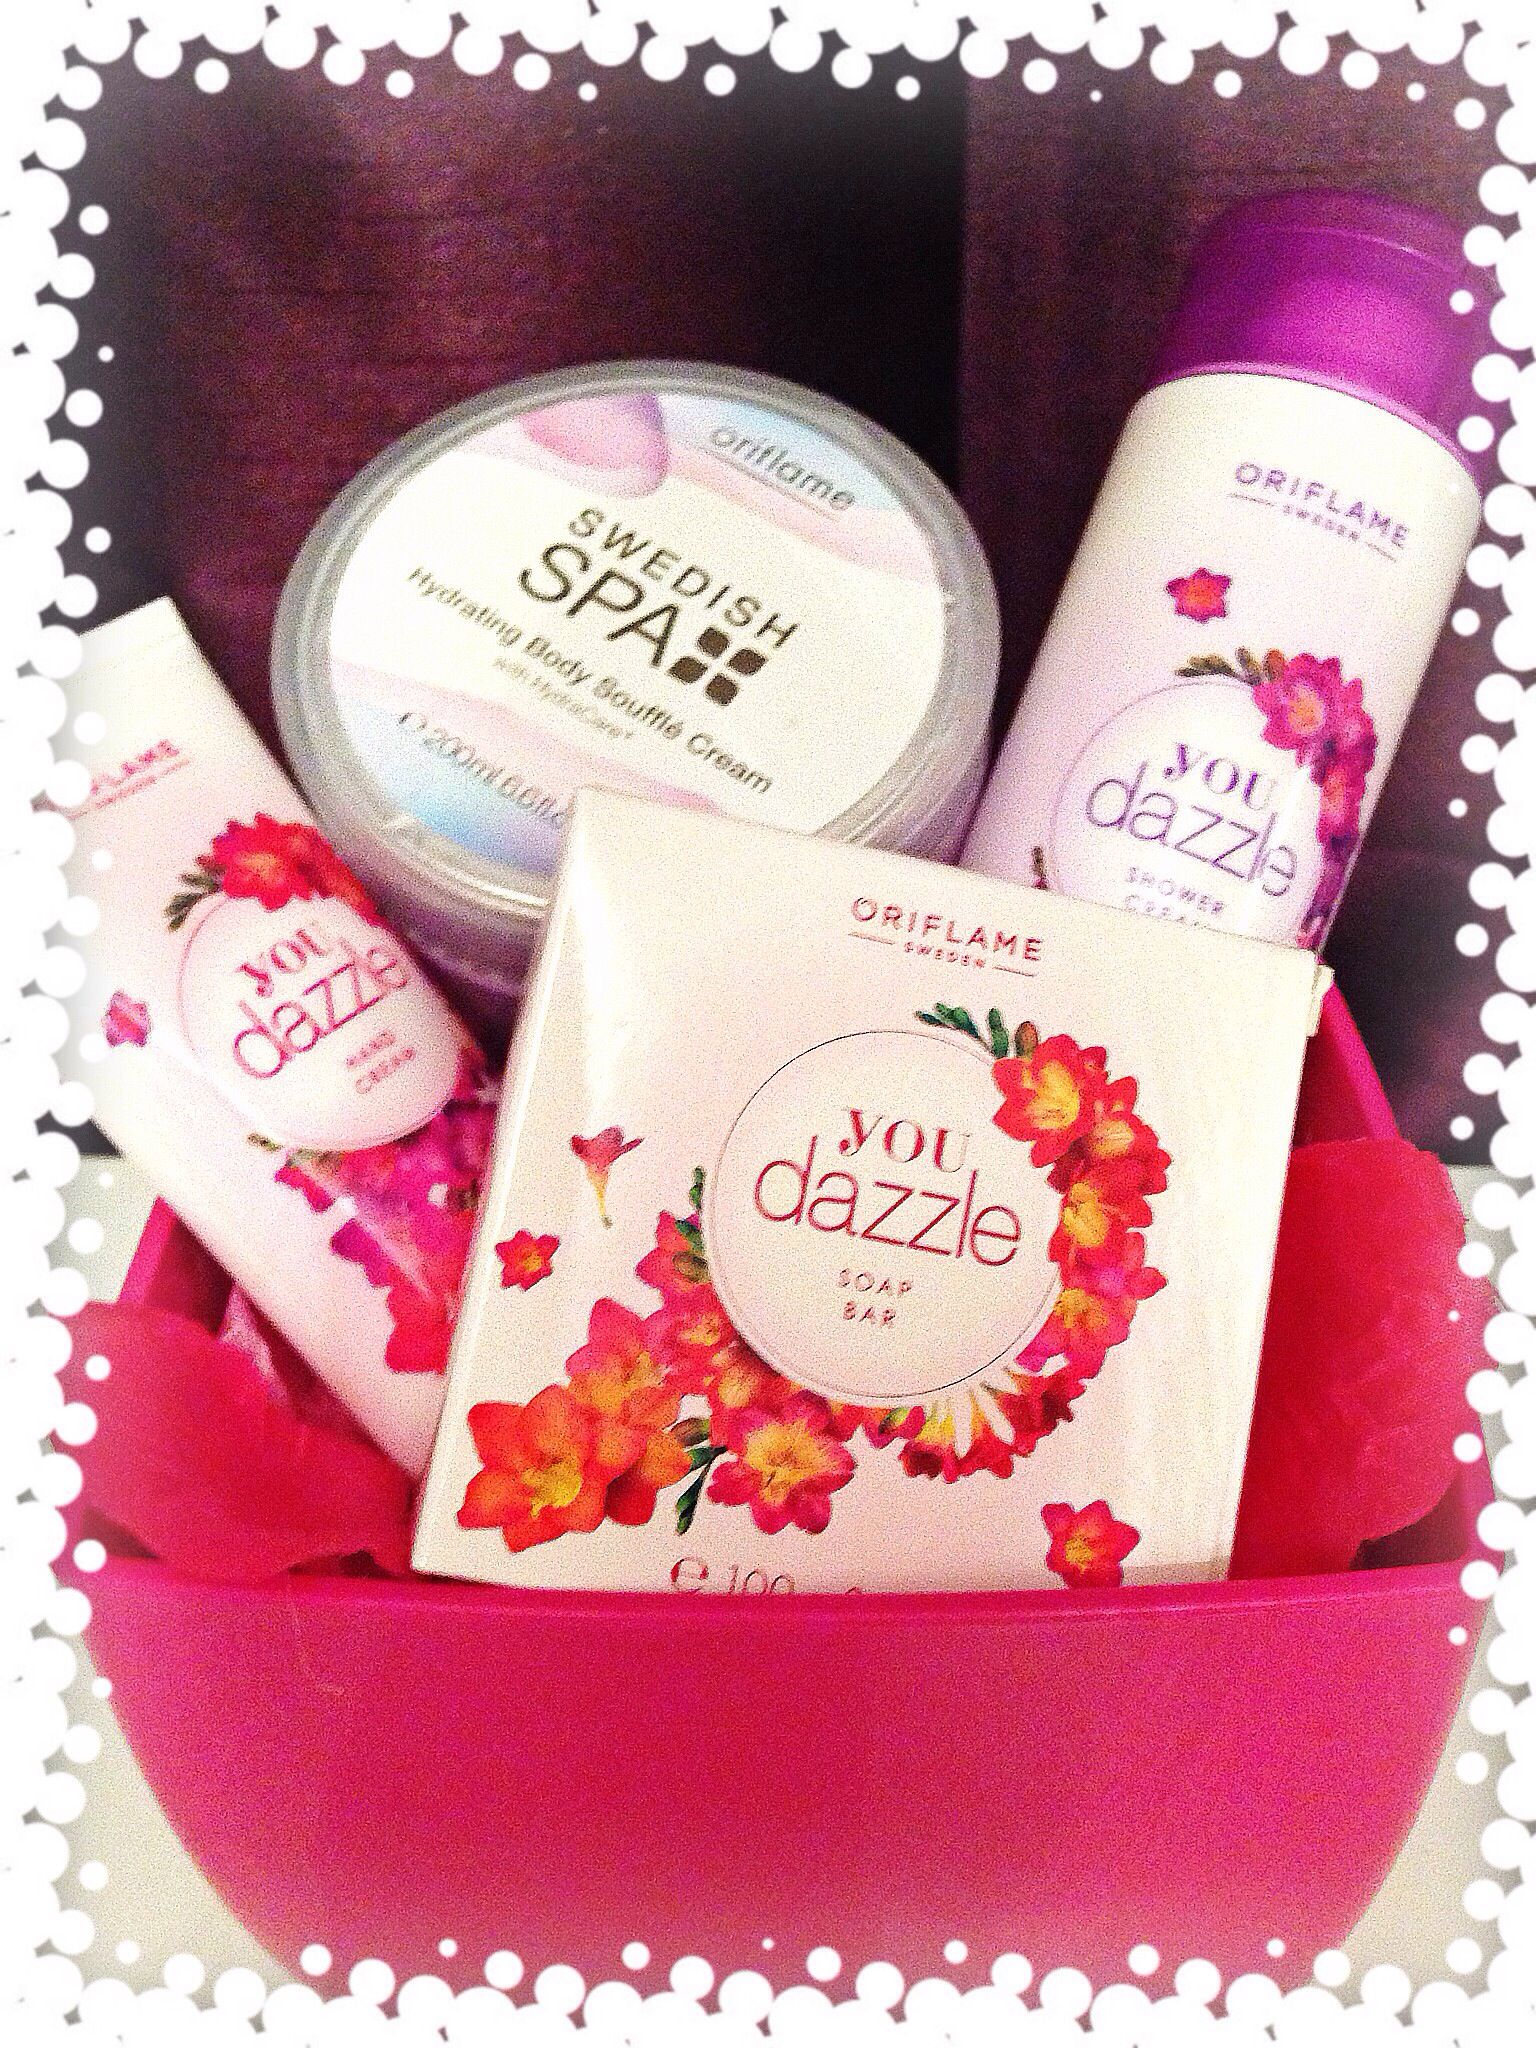 Oriflame you dazzle set of shower cream, hand cream and 2 soaps only £8.00, contact myself to purchase sinclairj69@gmail.com